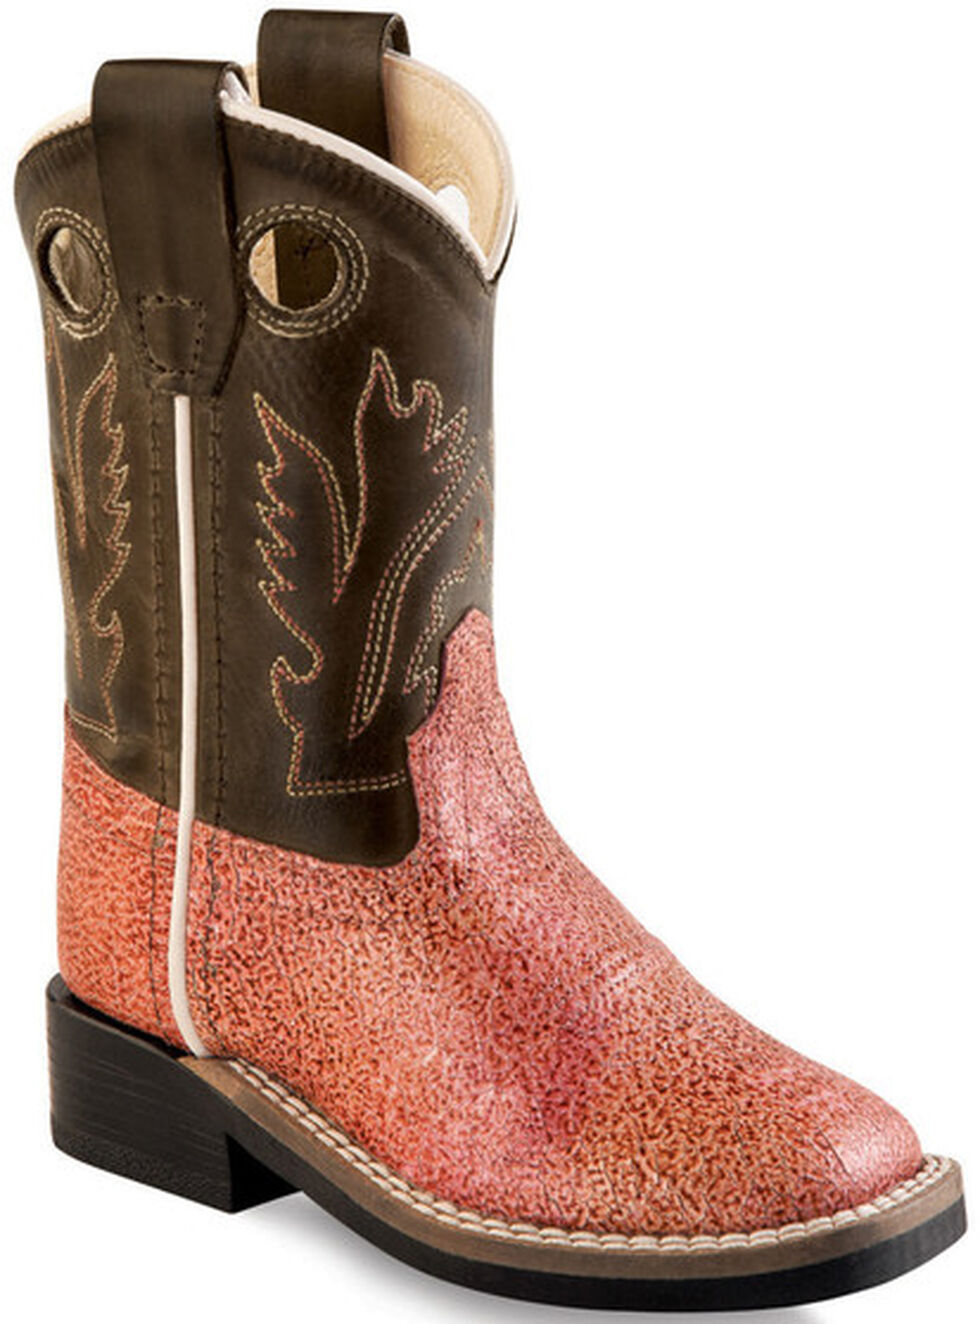 Old West Toddler Girls' Multi-Color Western Boots - Square Toe , Multi, hi-res